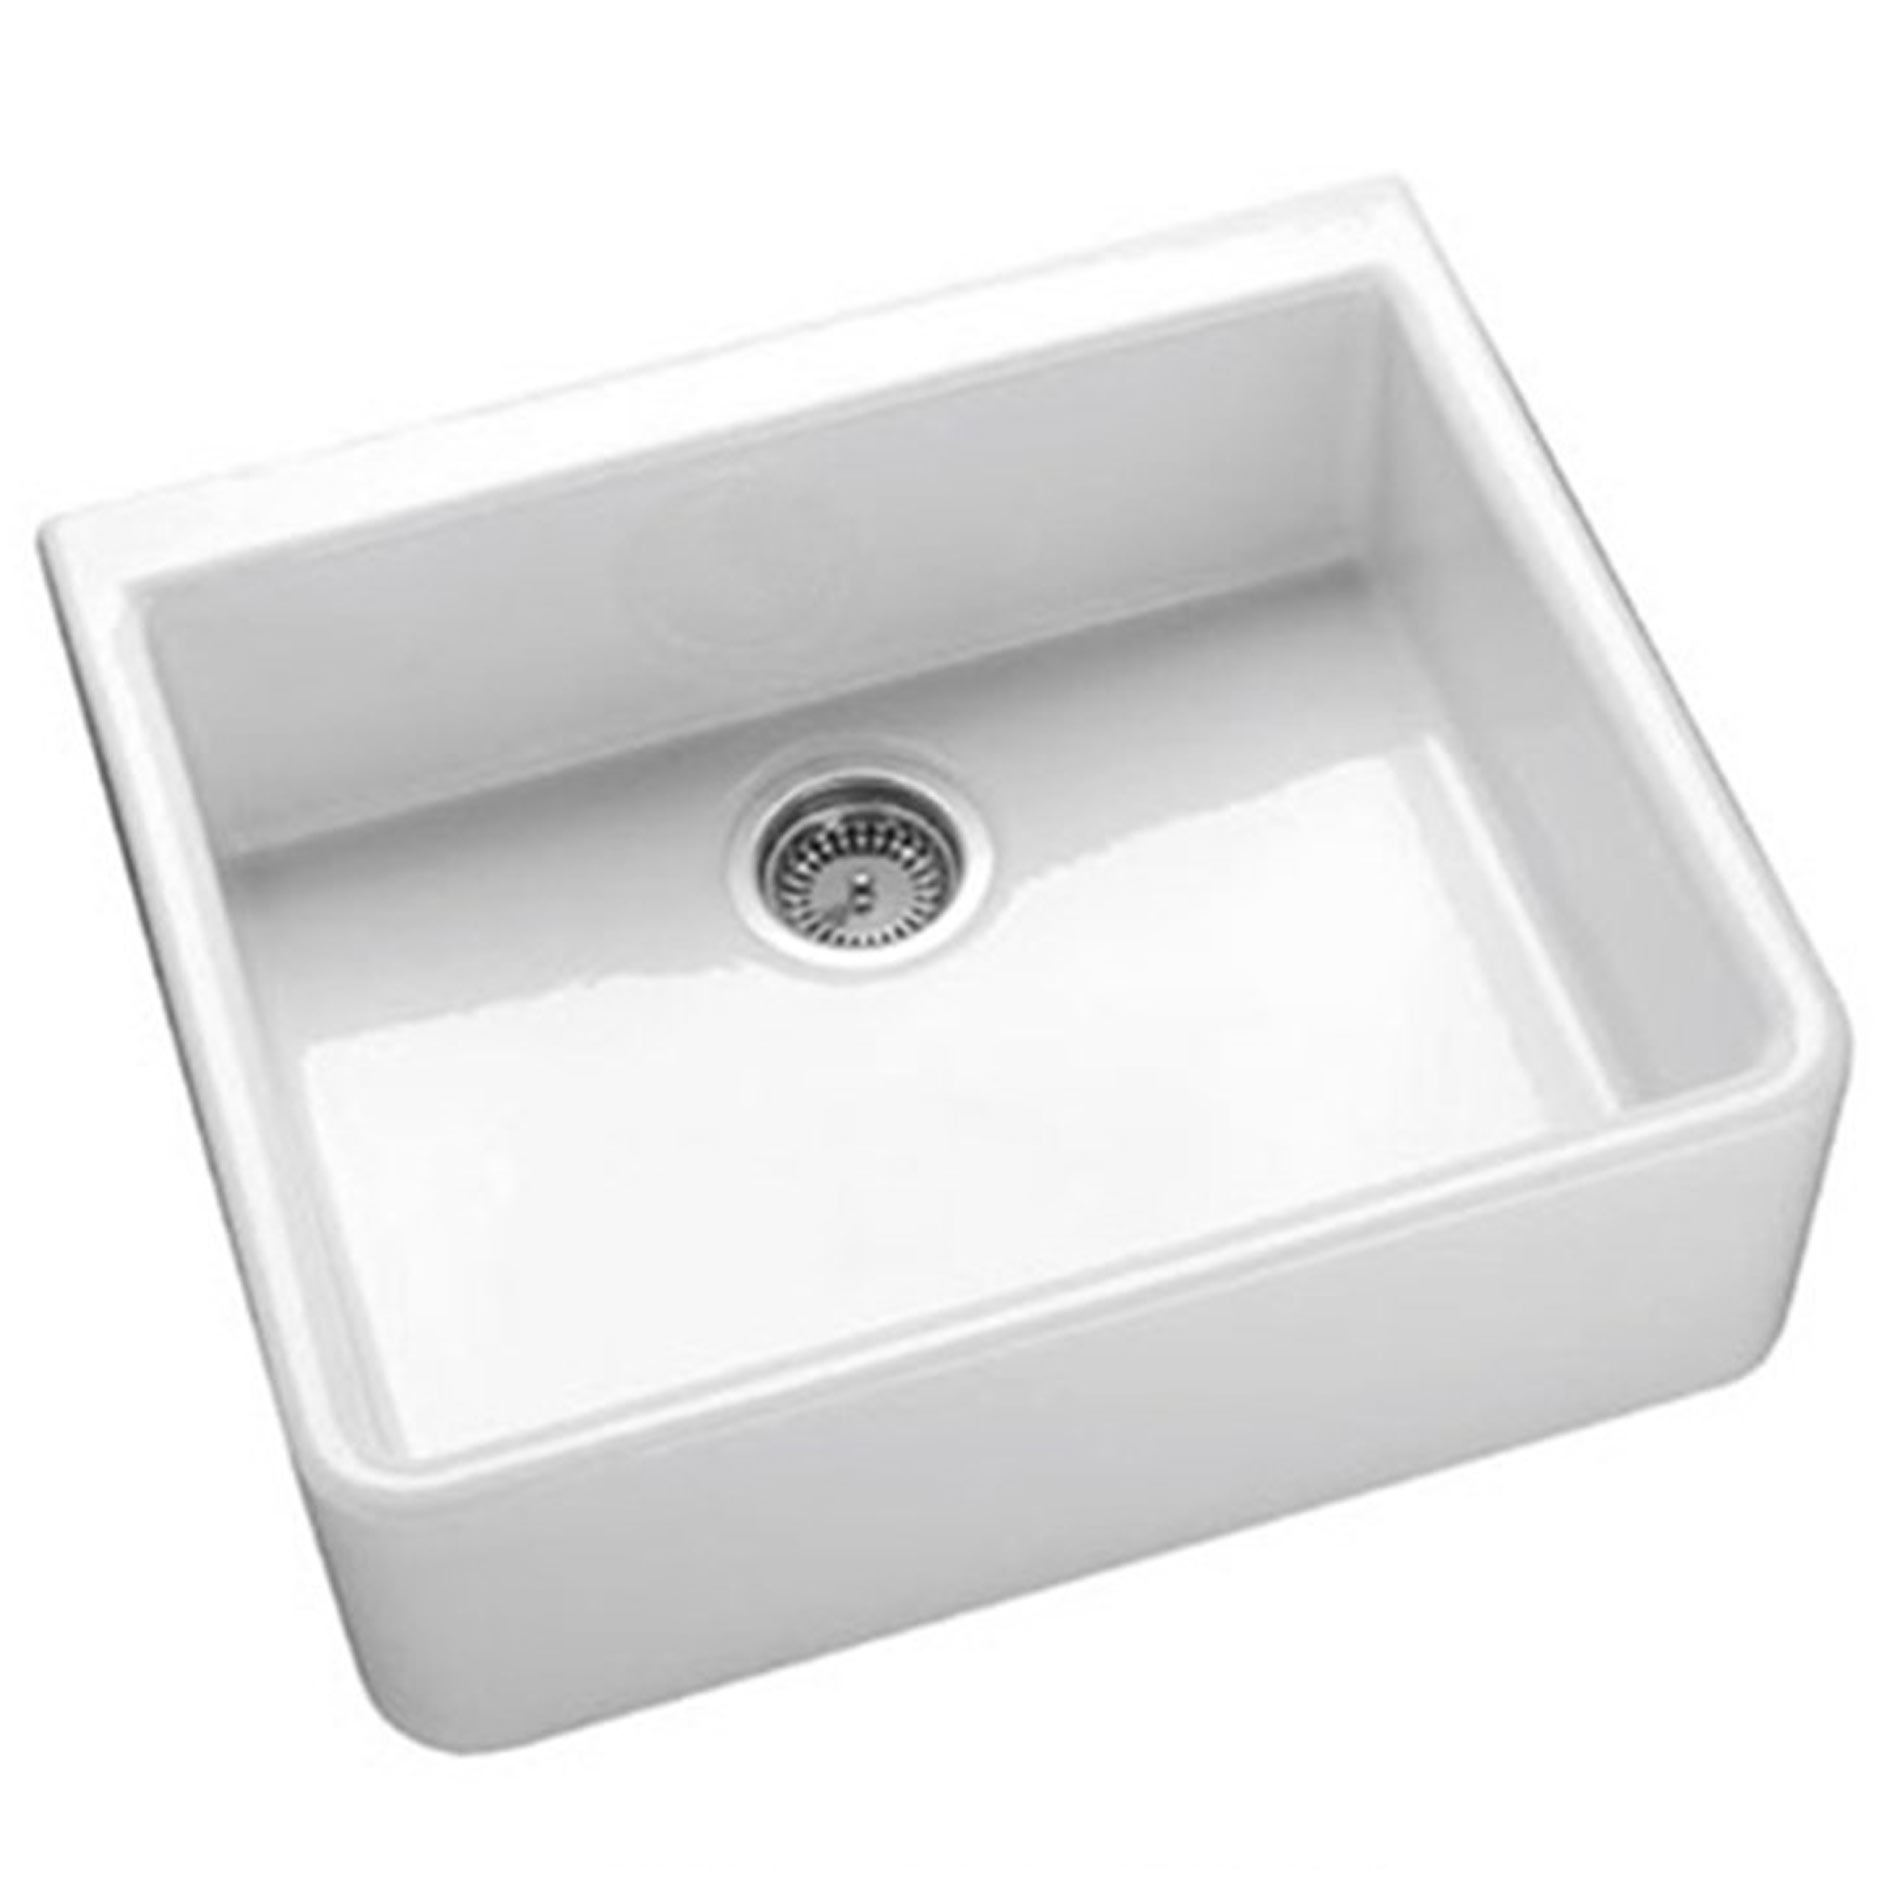 Villeroy boch farmhouse 60 ceramic sink 6322 kitchen sinks taps picture of farmhouse 60 ceramic sink 6322 workwithnaturefo